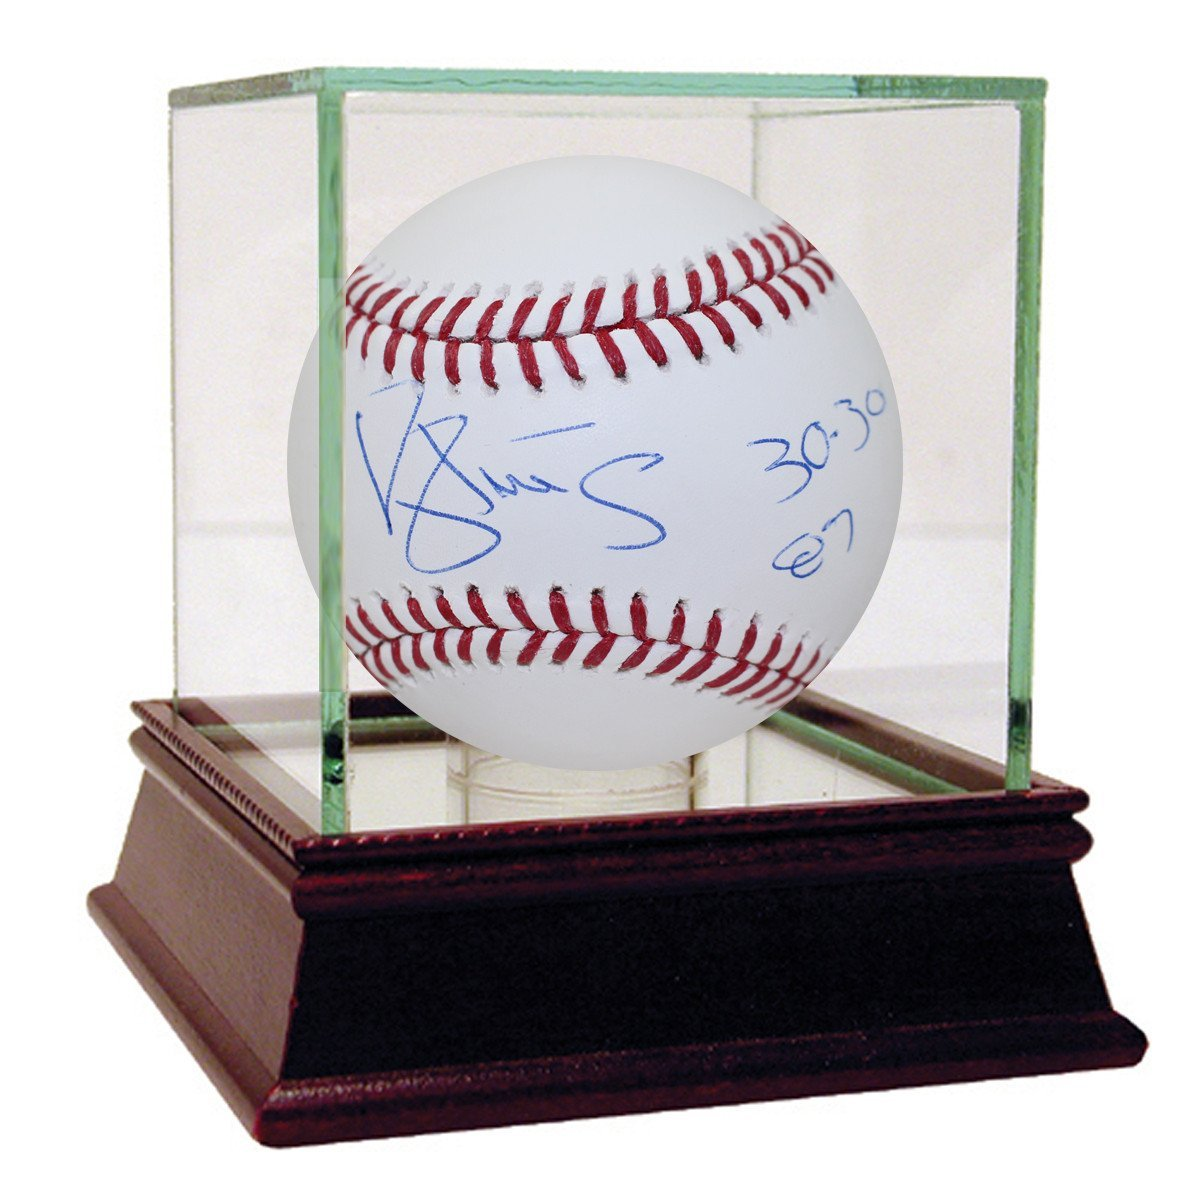 "Darryl Strawberry Autographed MLB Major League Baseball with ""30/30 87"" inscribed - Case is NOT Included"